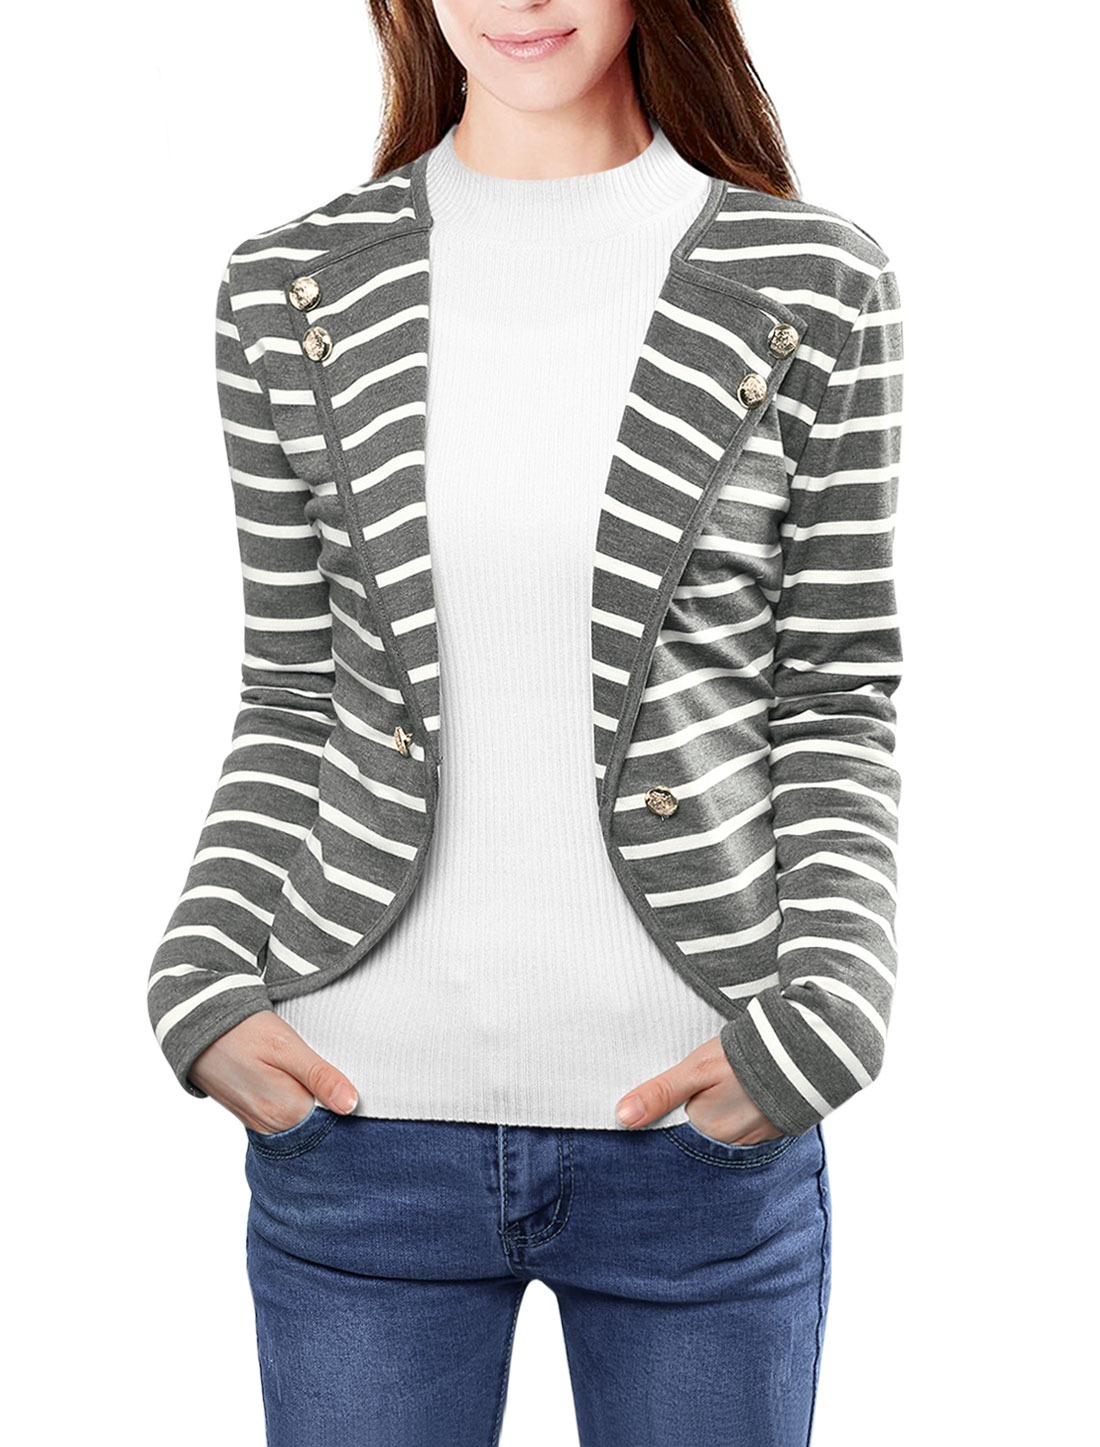 Allegra K Ladies Notched Lapel Button Decor Striped Blazer Gray White L